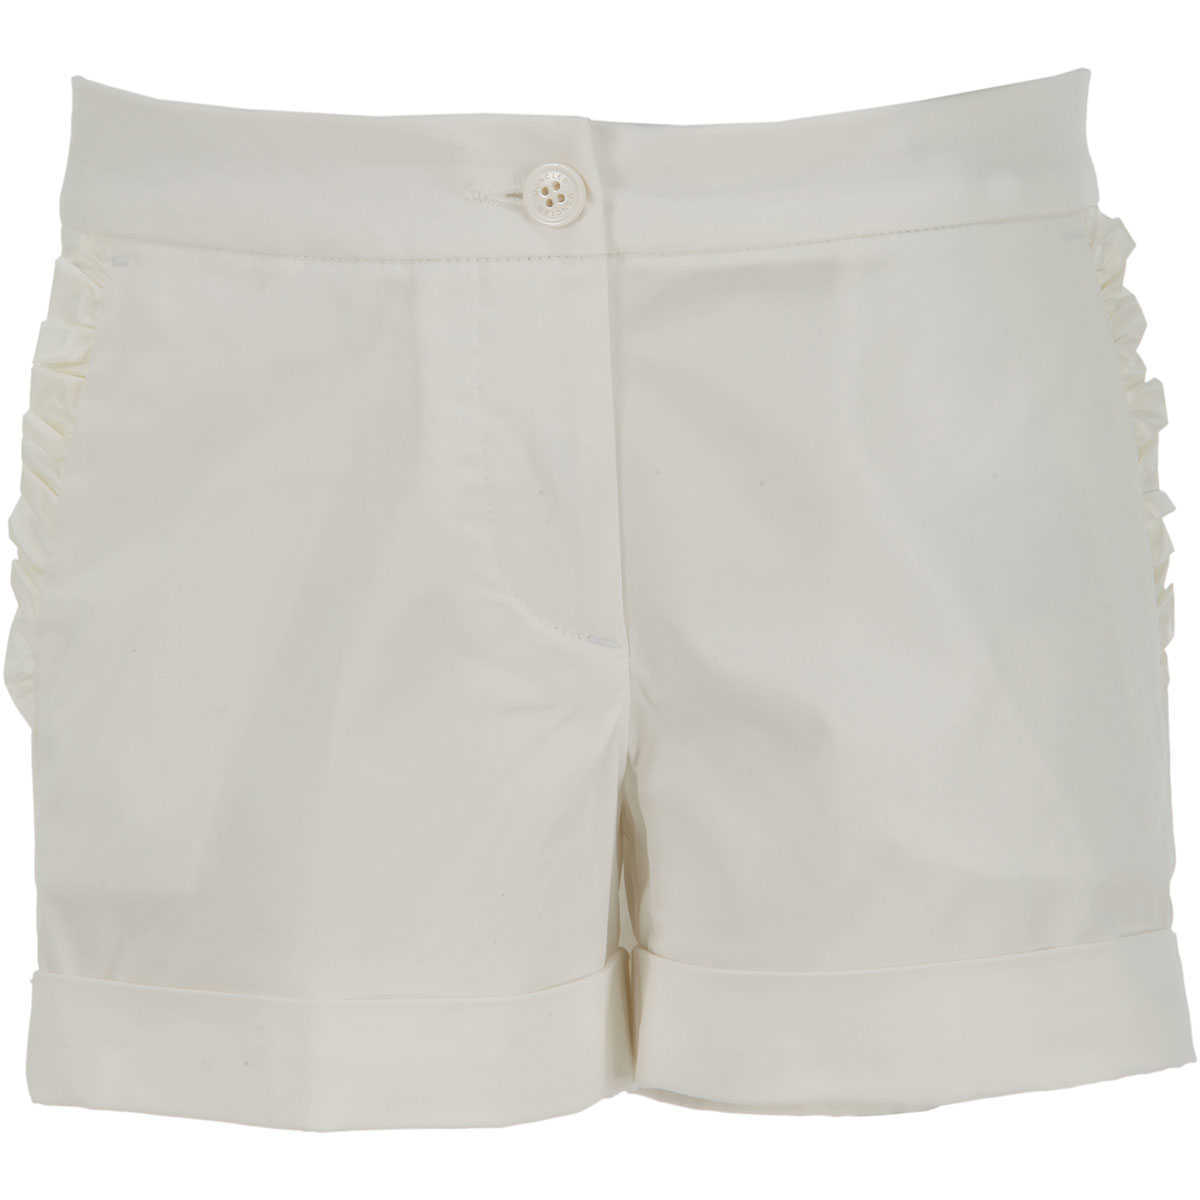 Moncler Kids Shorts for Girls in Outlet White Canada - GOOFASH - Womens SHORTS